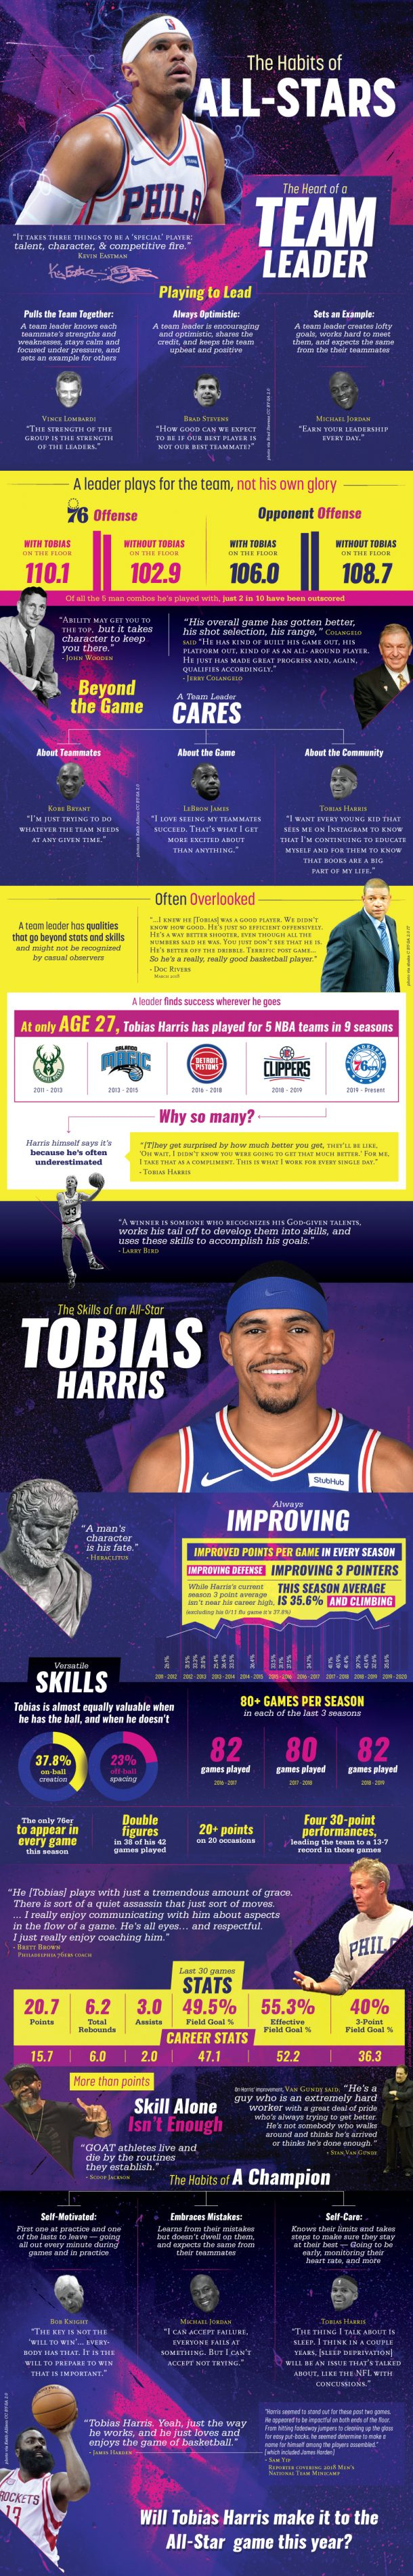 The Habits of All-Stars